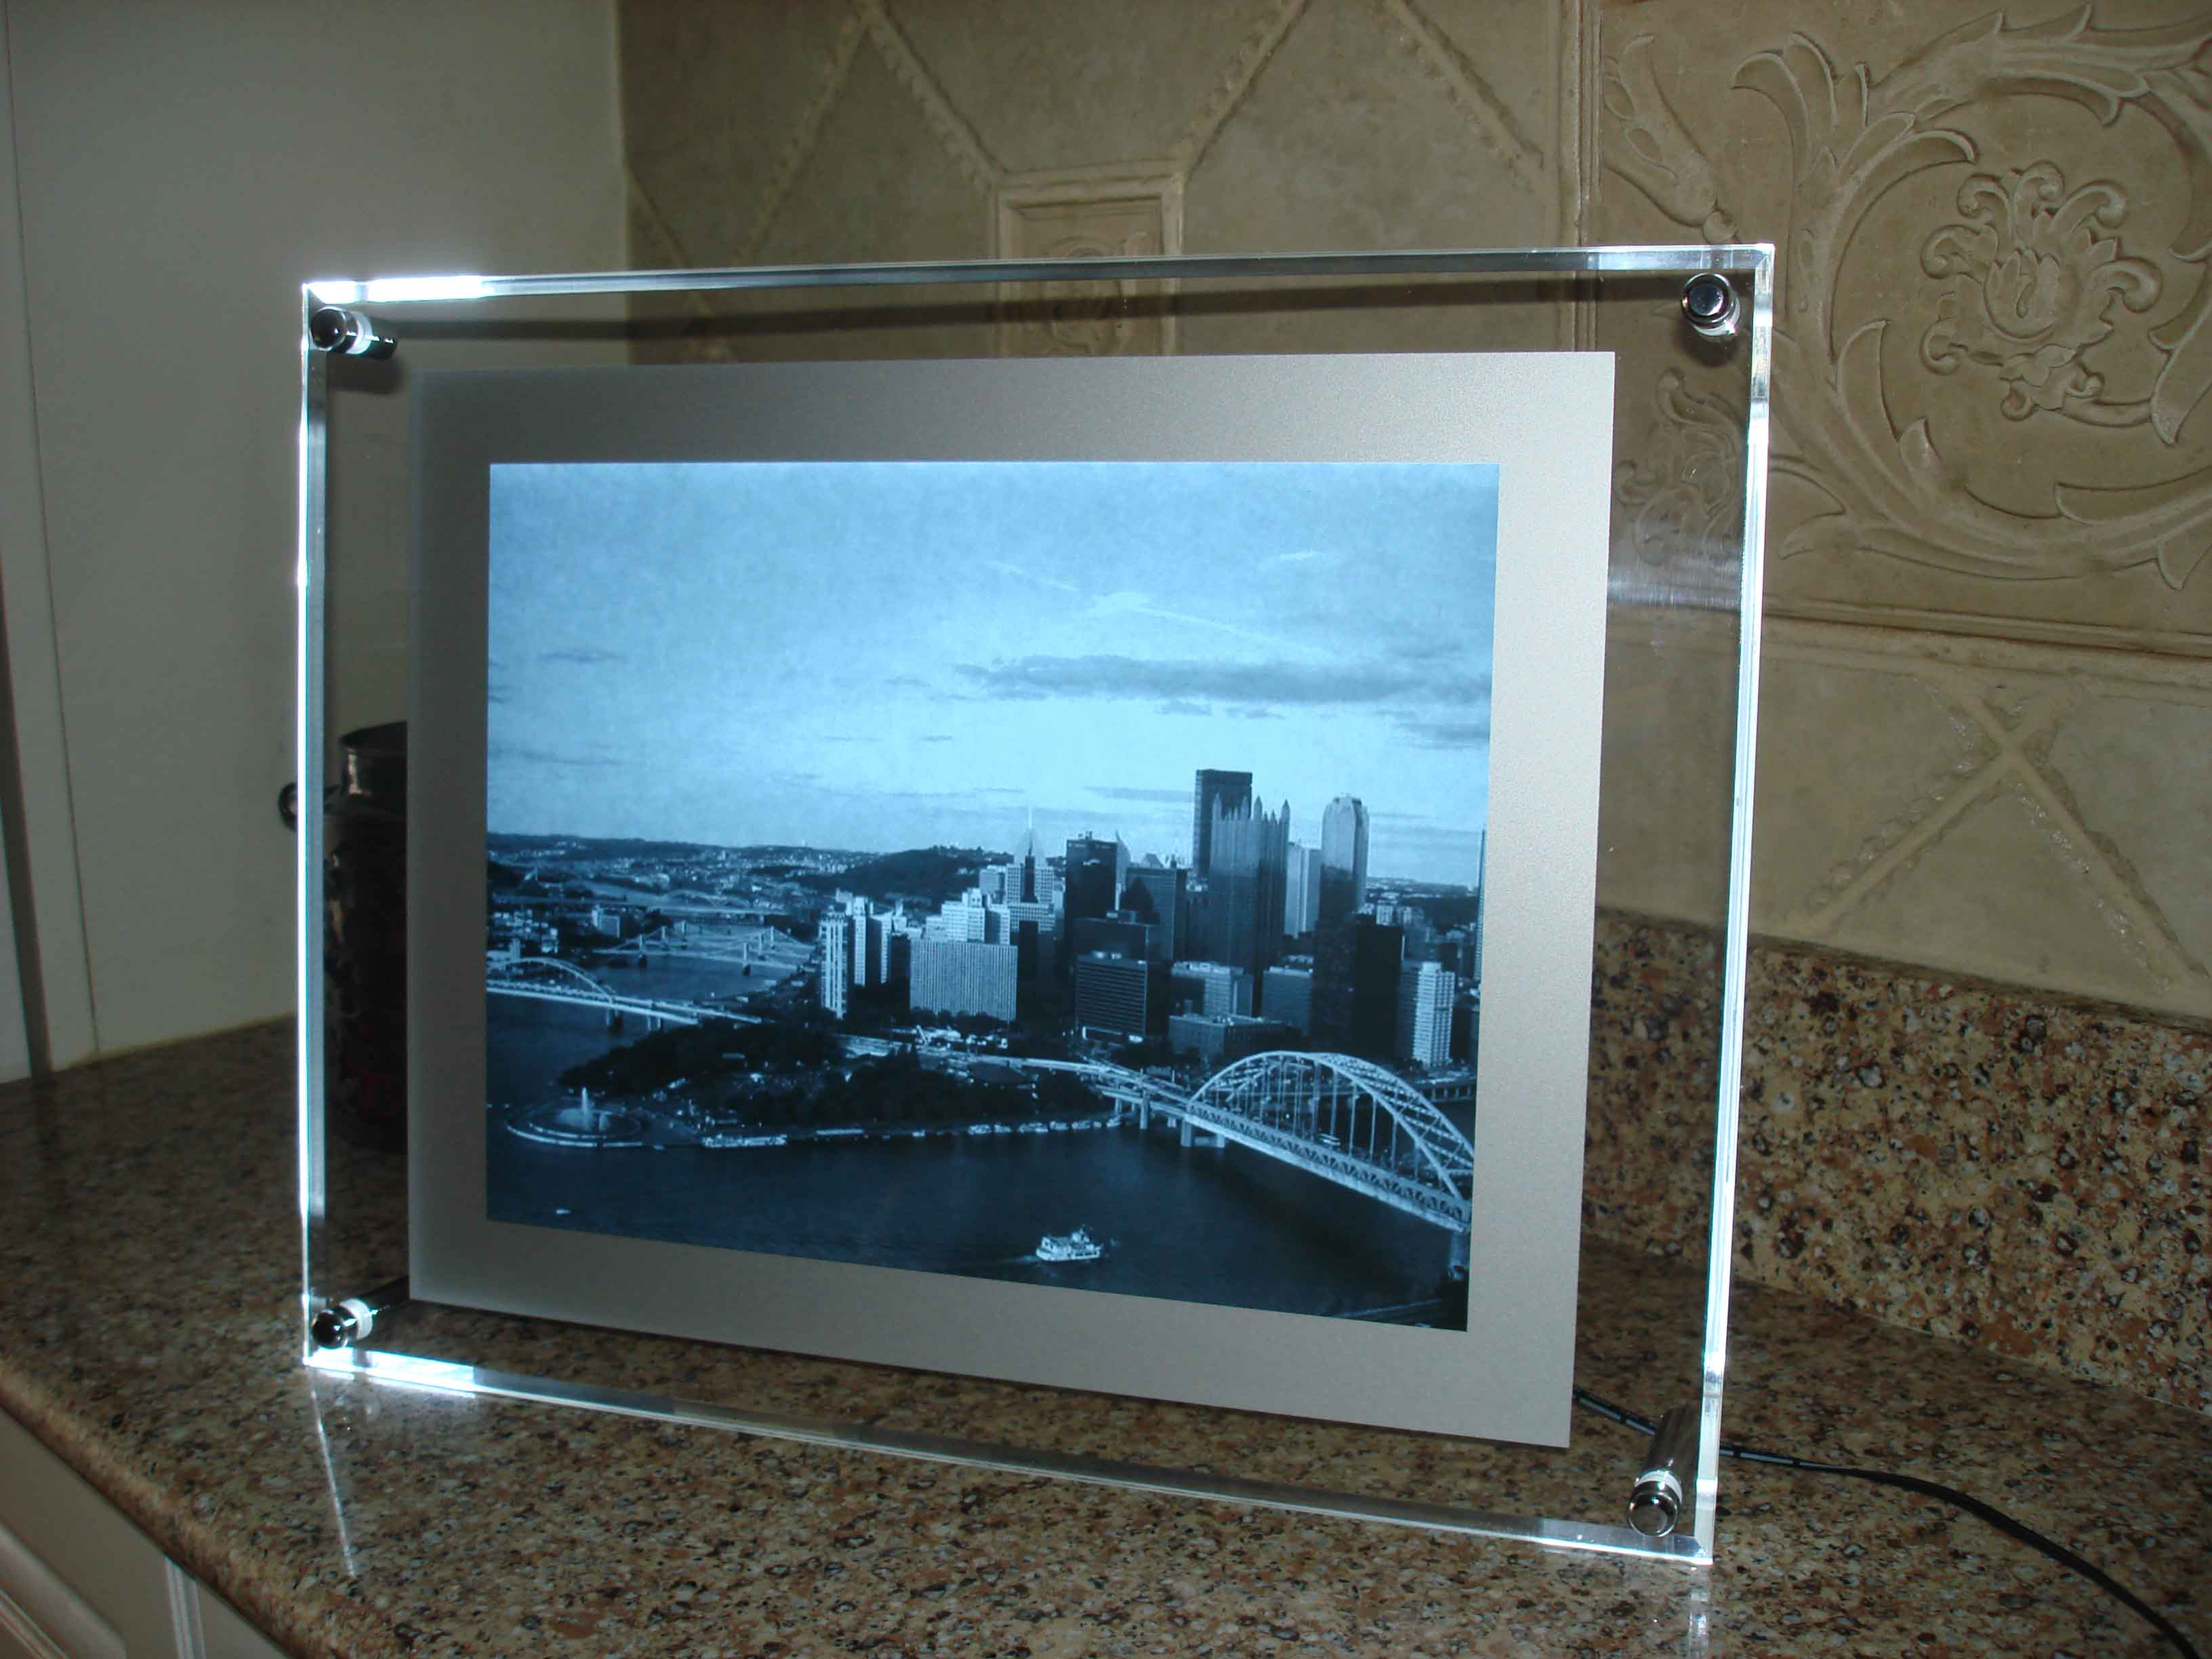 framed x-ray picture